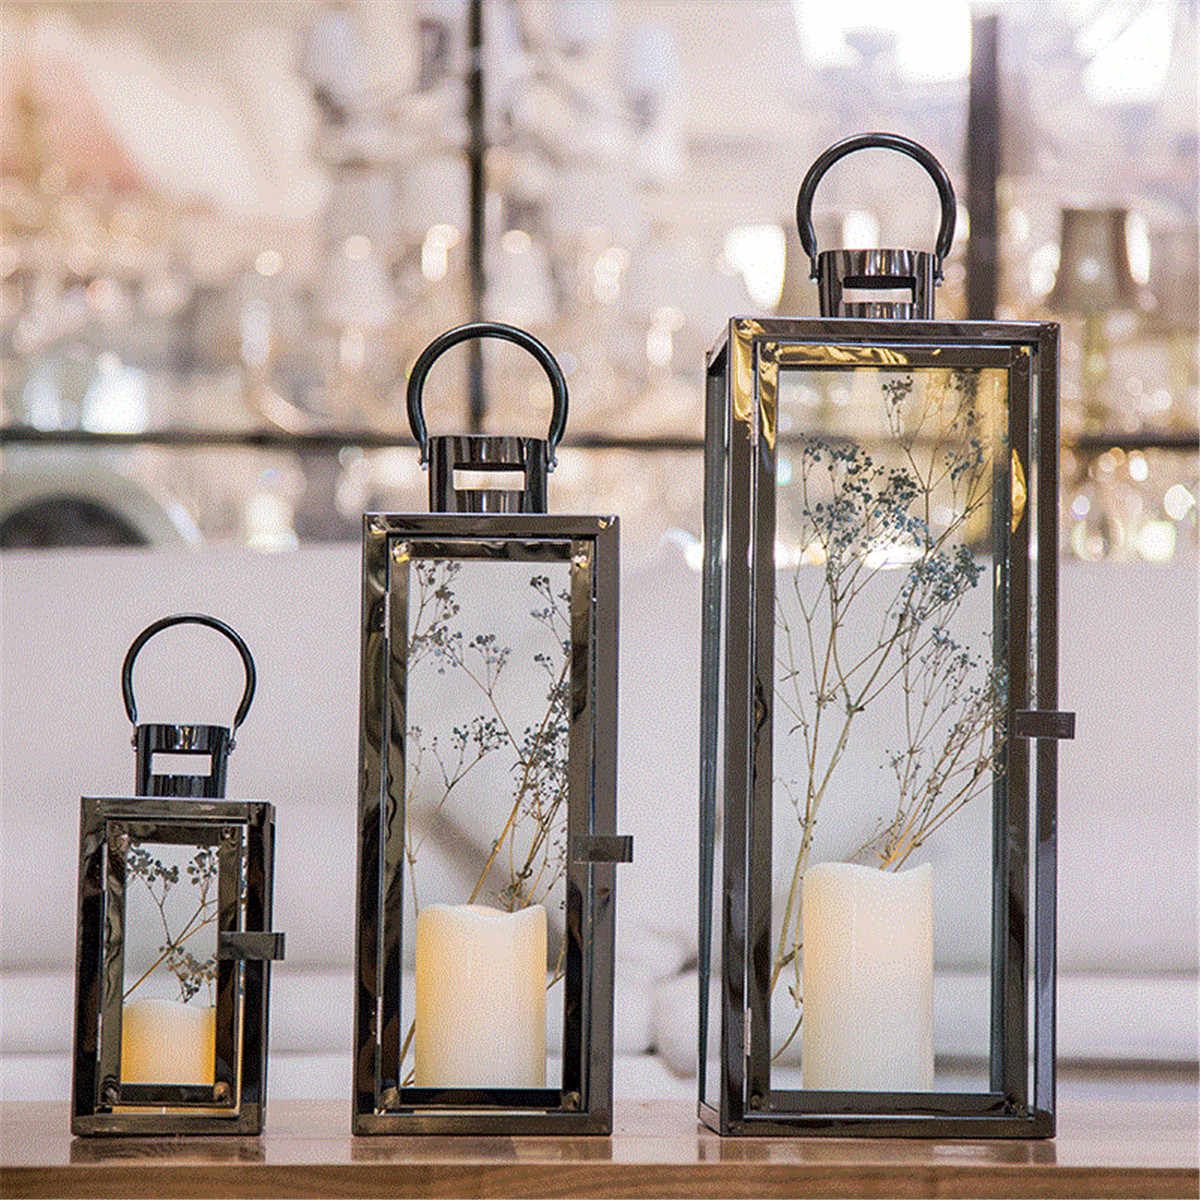 7pcs Flameless Candle Lanterns Stainless Steel Decorative Candle Lantern  for Indoor Home Decoration (Black)